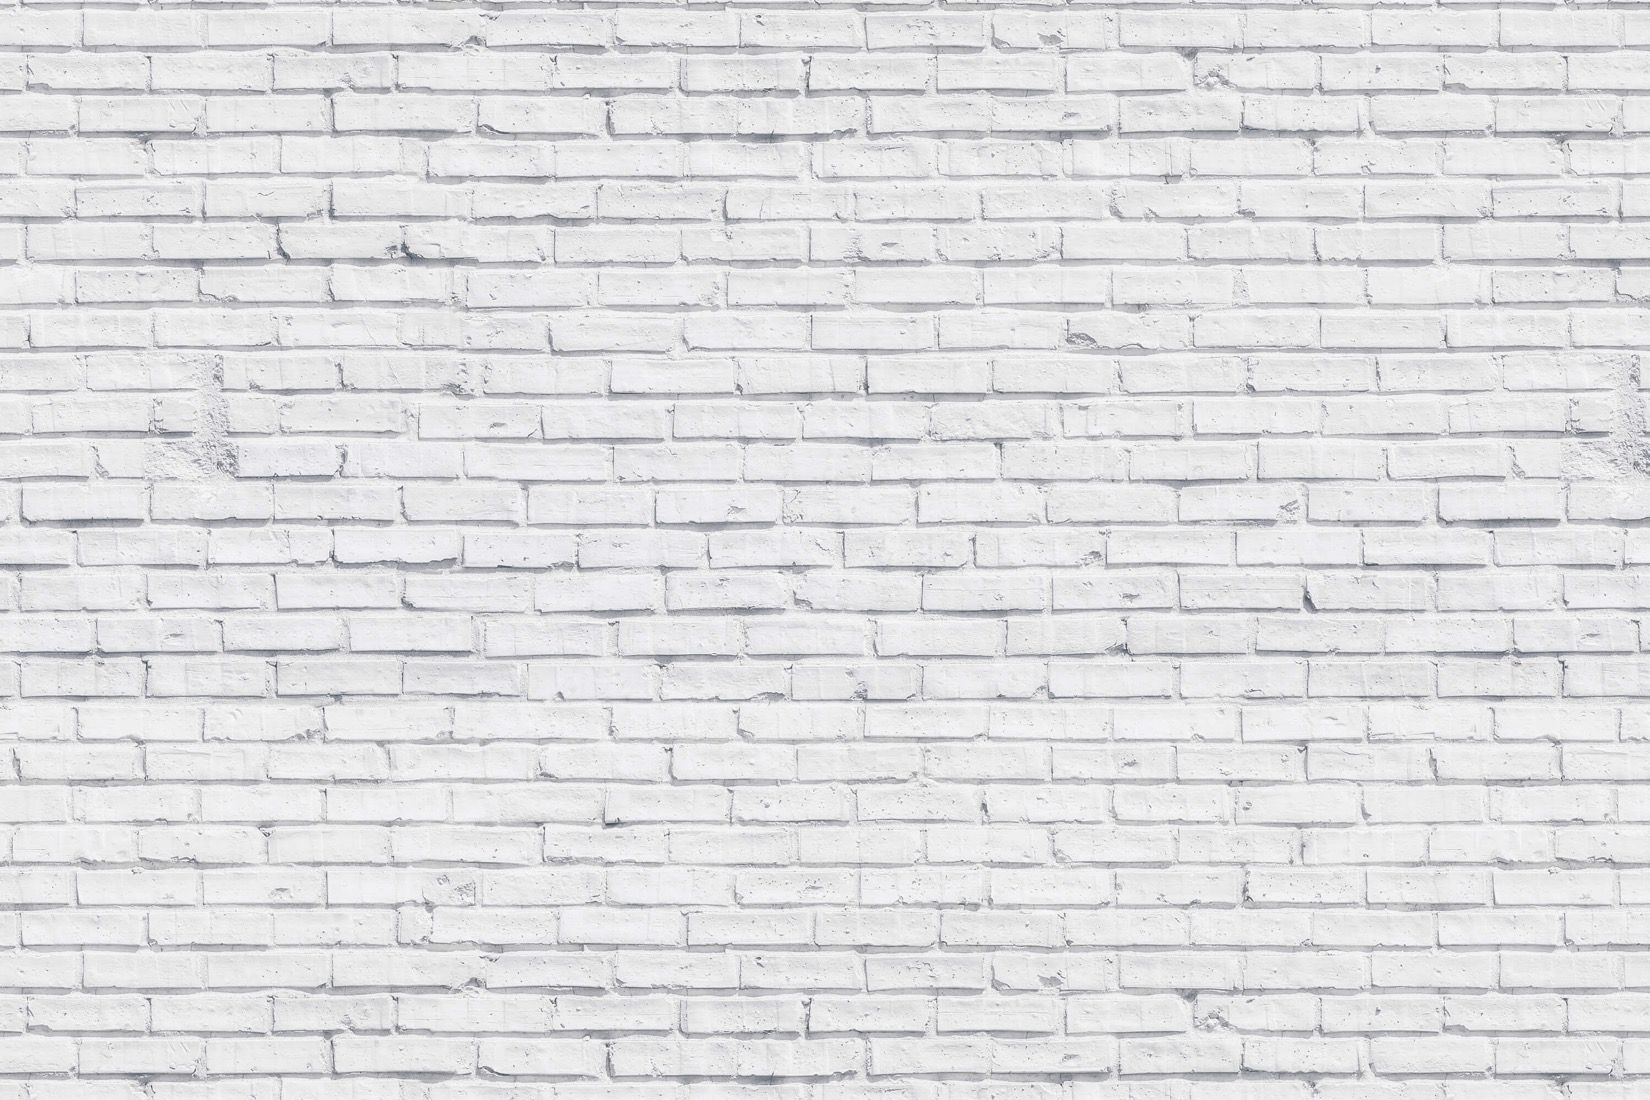 White Brick Wallpaper Mural Murals Wallpaper White Brick Wallpaper Brick Wall Wallpaper Brick Wallpaper